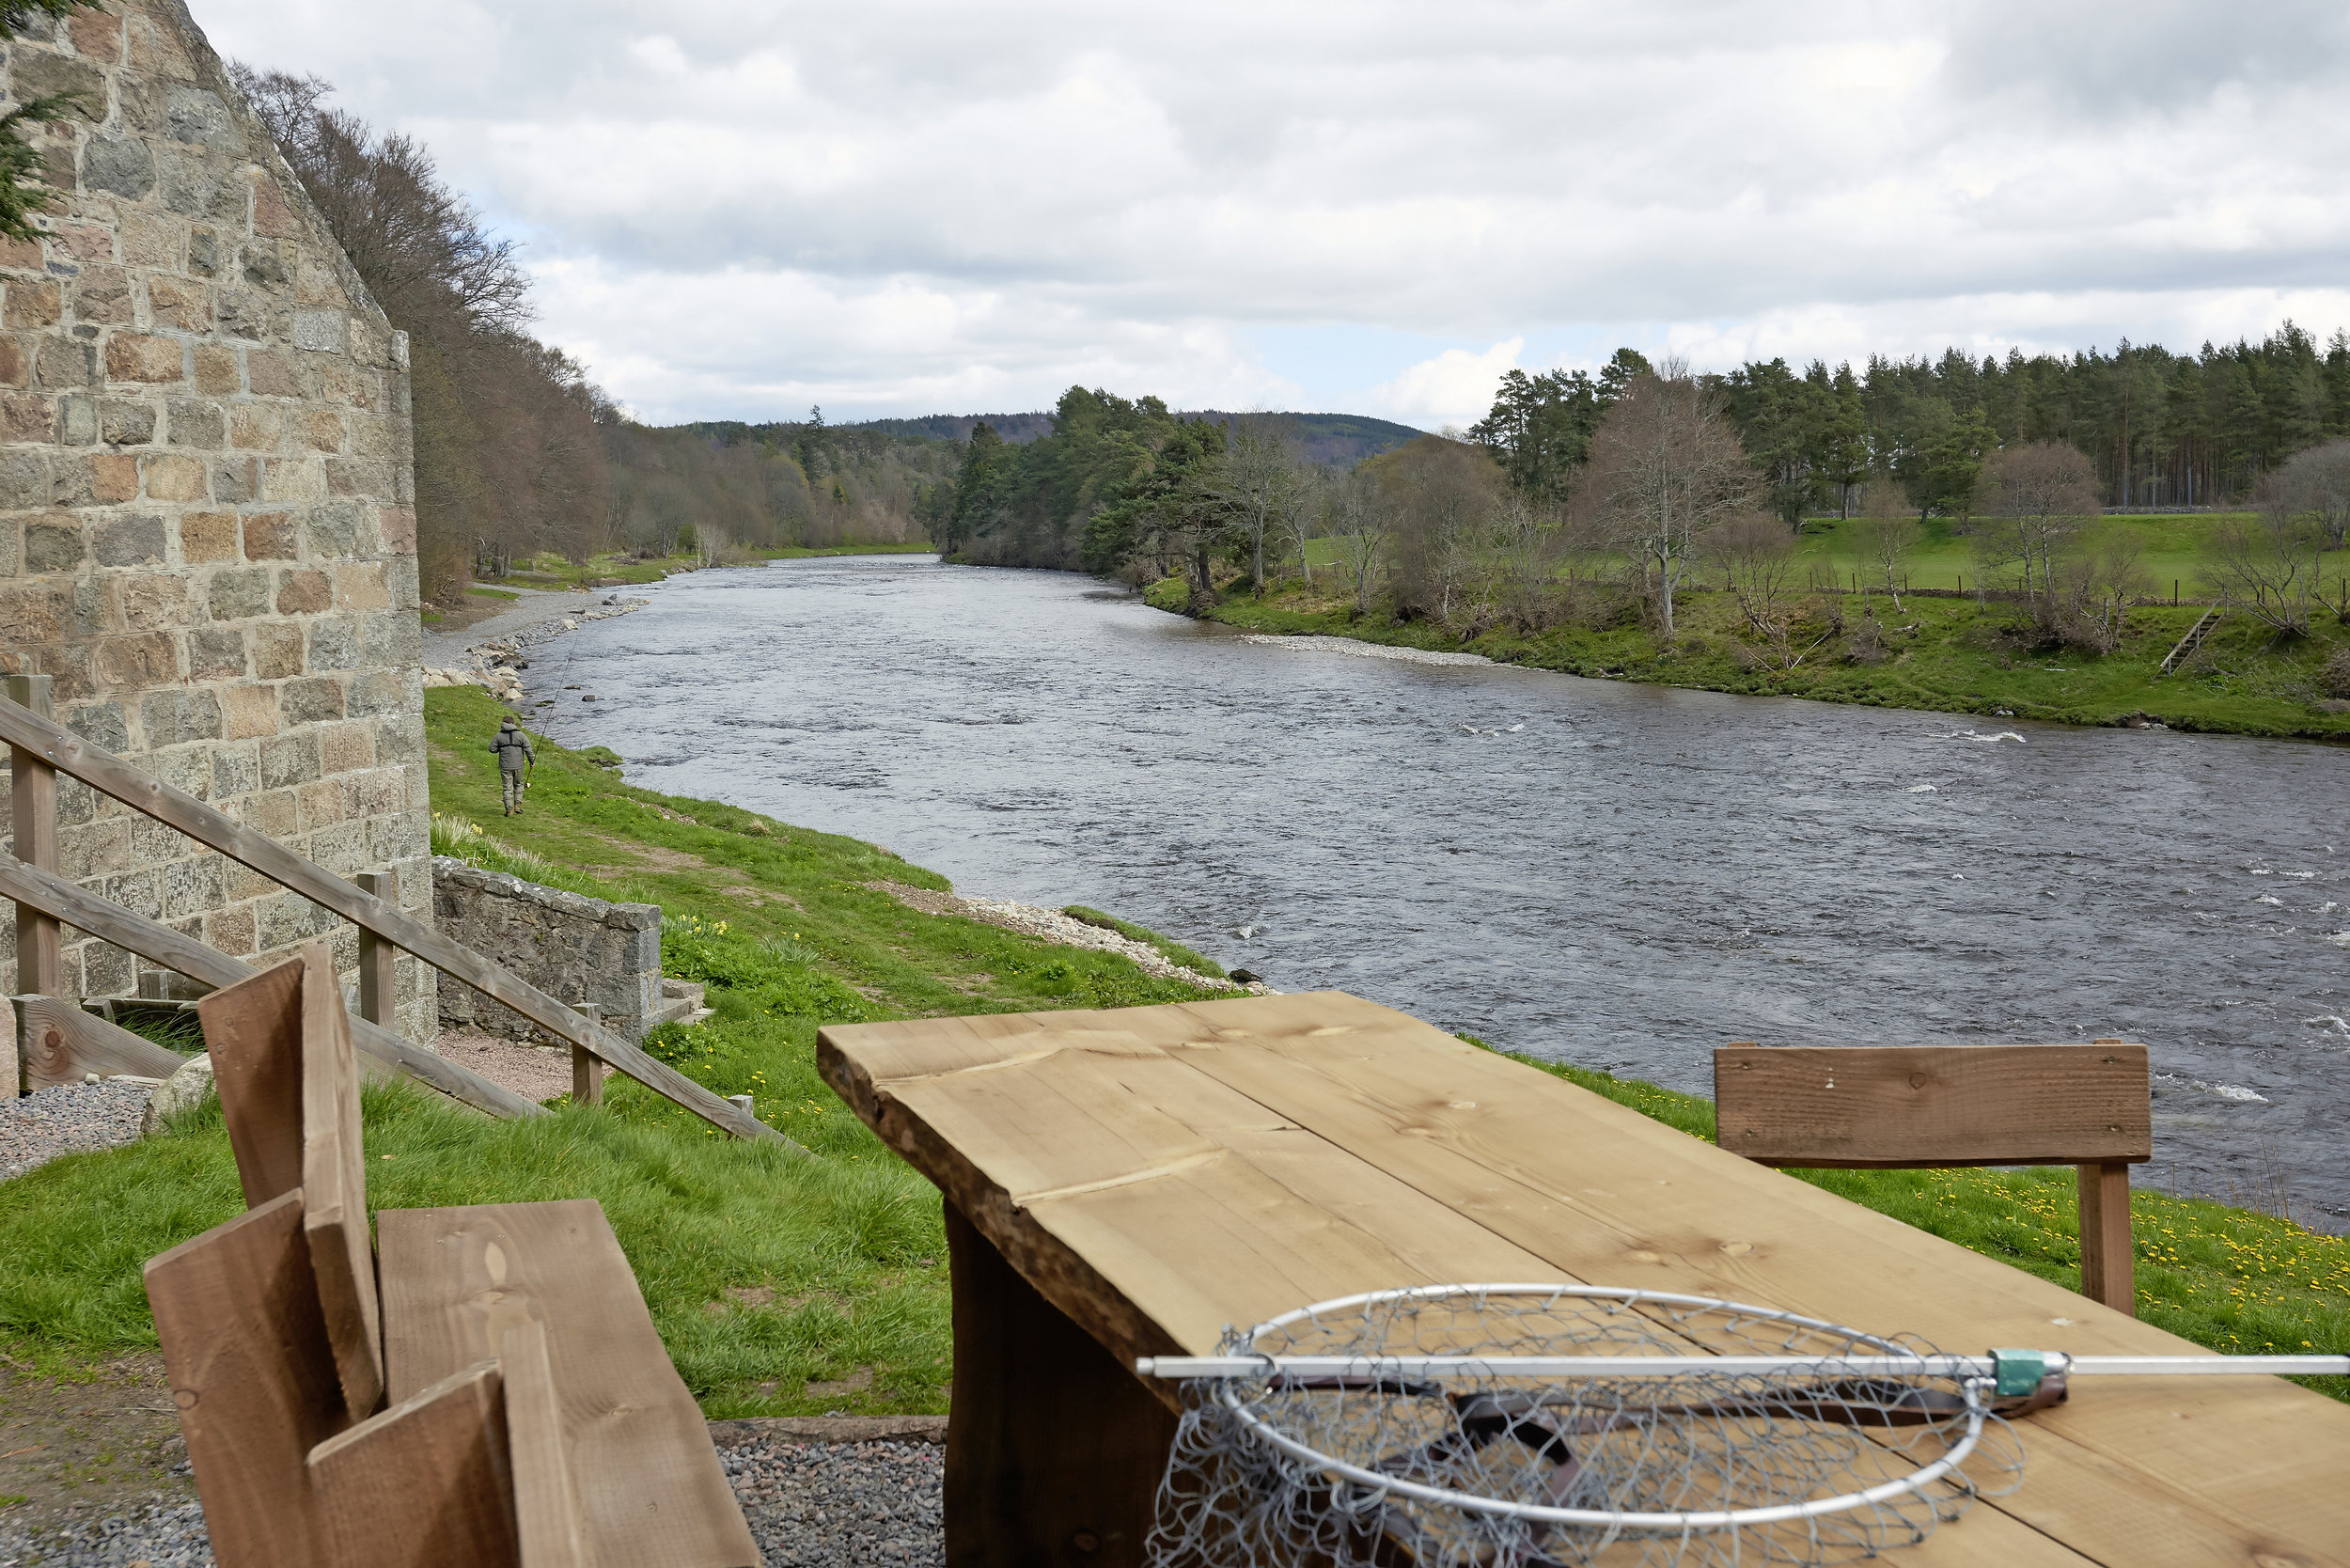 The Mill Pool at Dess on the River Dee, which remains a category 1 river.